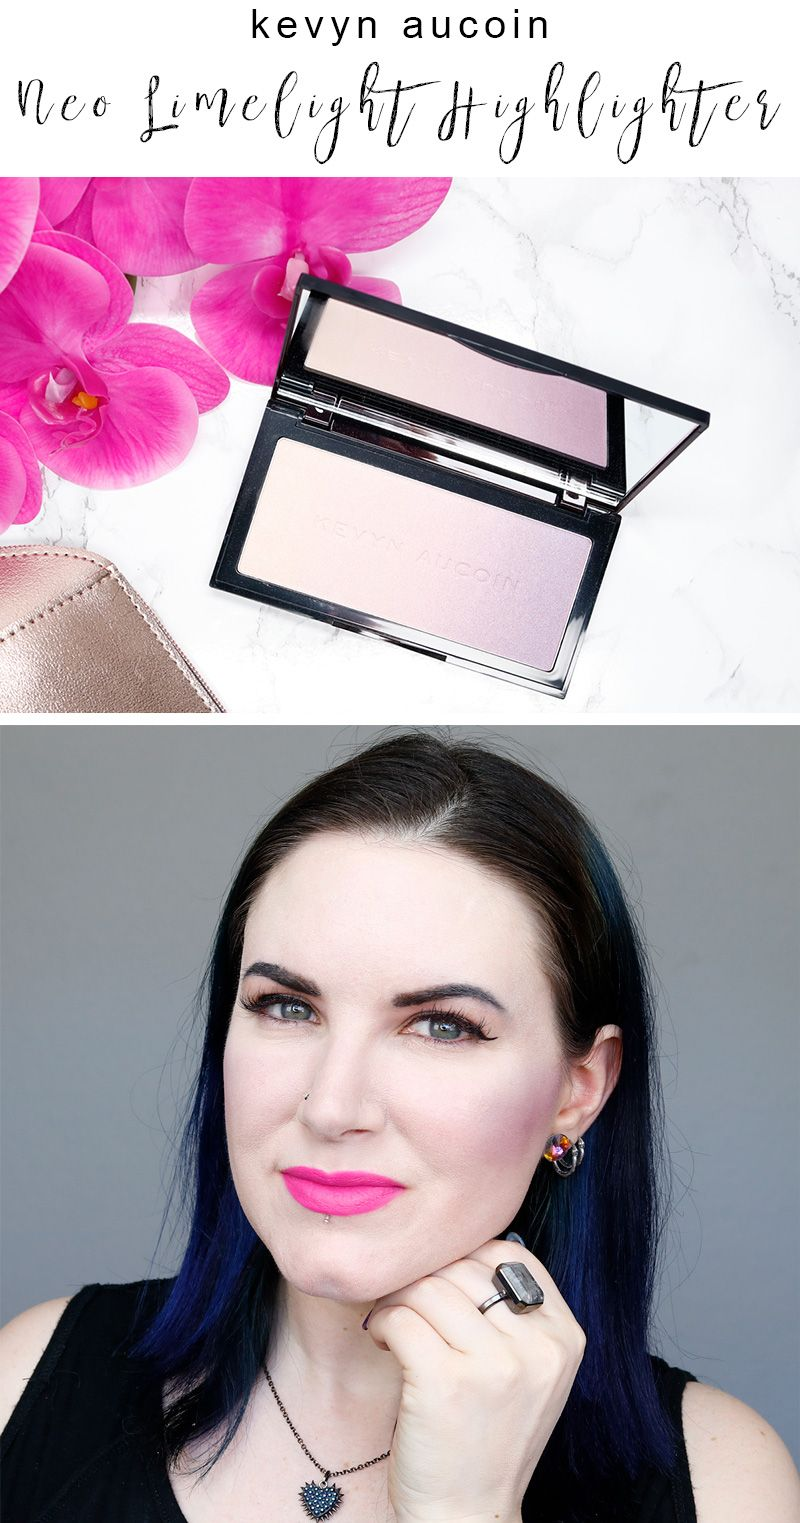 9f2cf6118ea Kevyn Aucoin Neo Limelight Highlighter Review. This beautiful, refined  highlighter is perfect for all skintones from pale to deep.